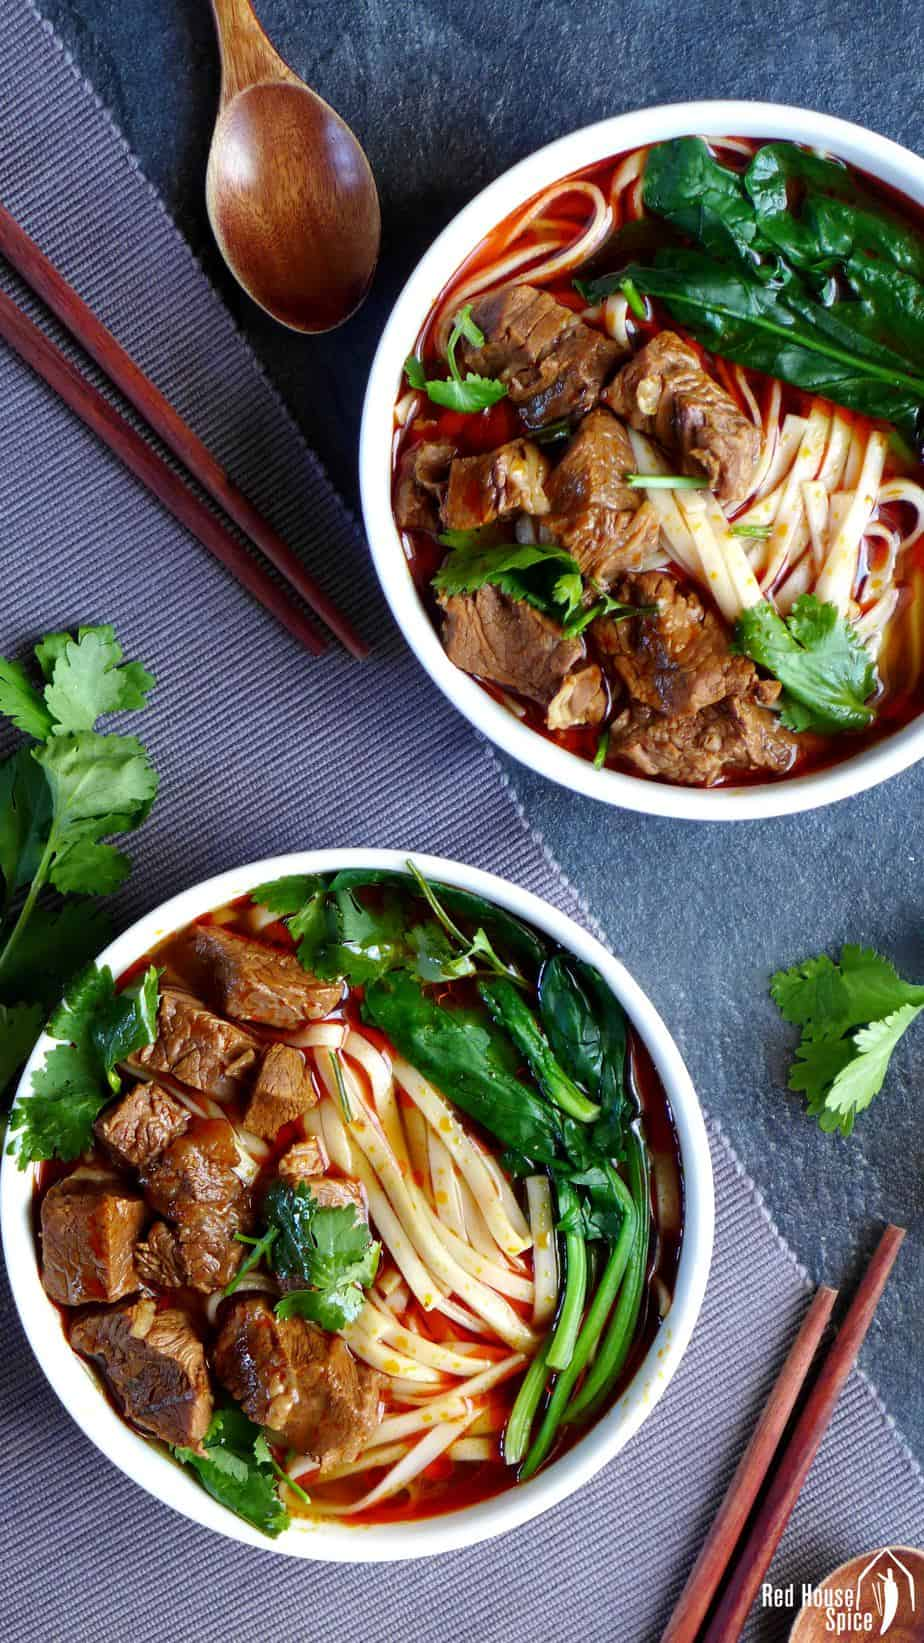 Two bowls of Sichuan style beef noodle soup